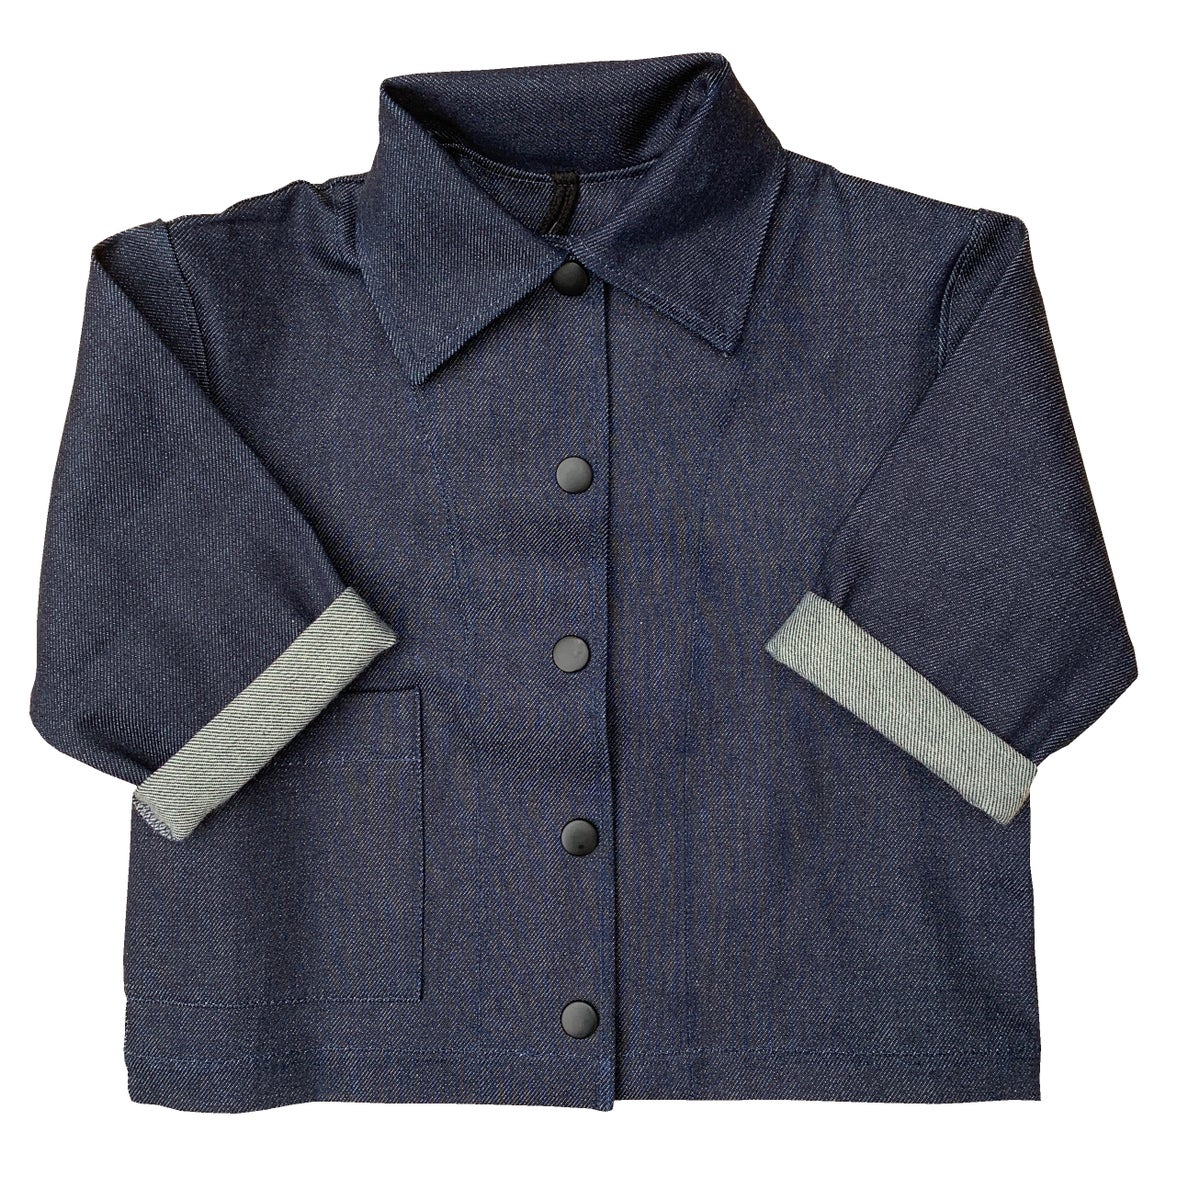 Image of Pippins - Denim jacket in raw indigo.